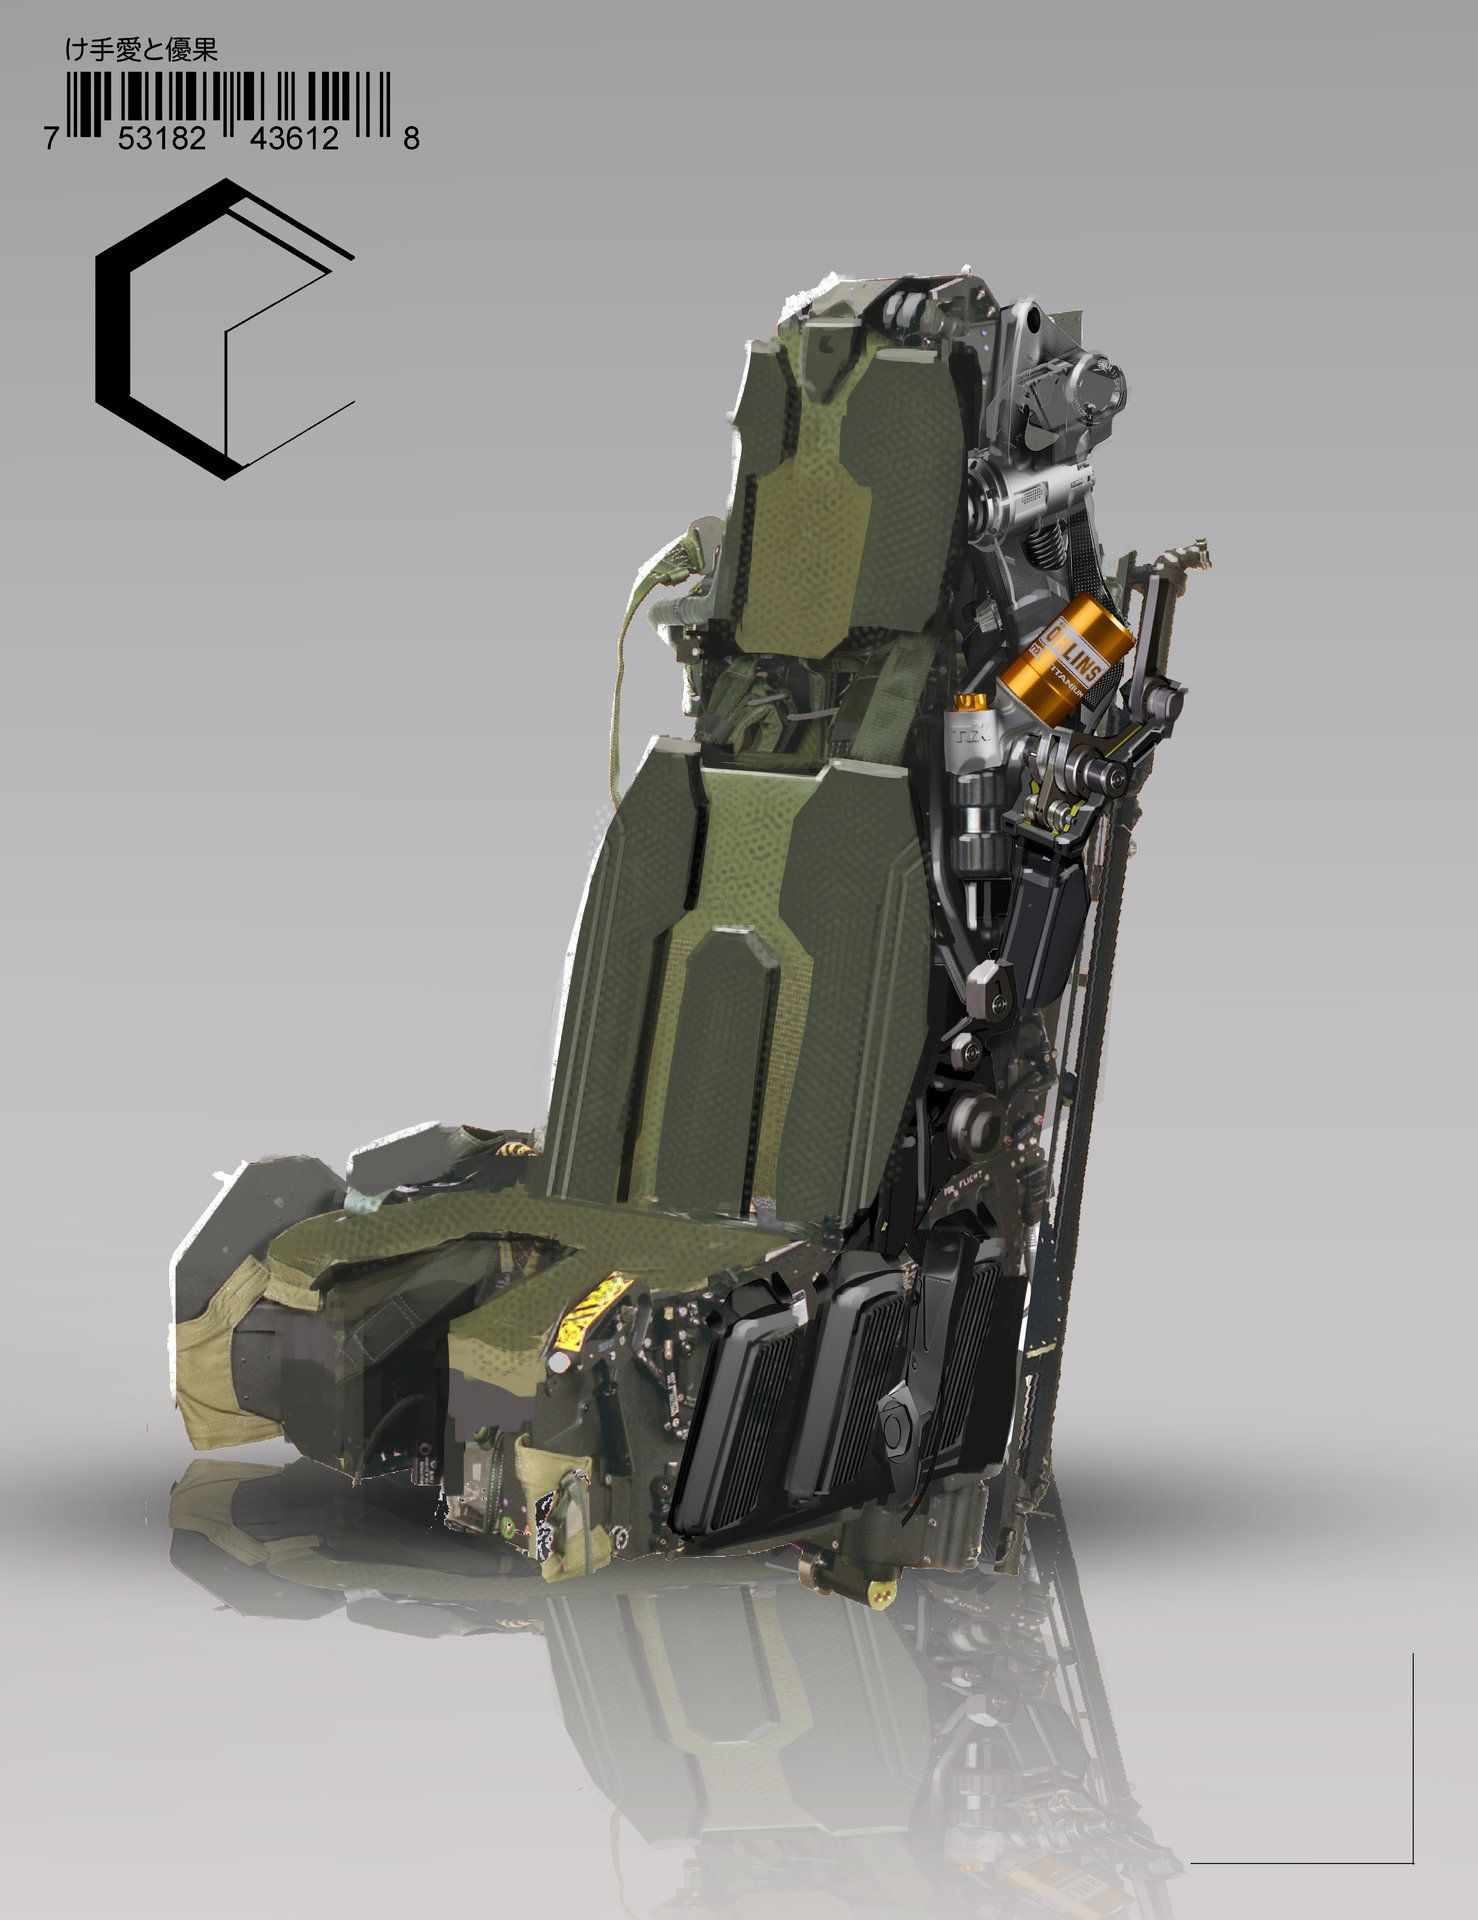 ejection seat office chair round kitchen table with caster chairs artstation cockpit josh ellem tech pinterest